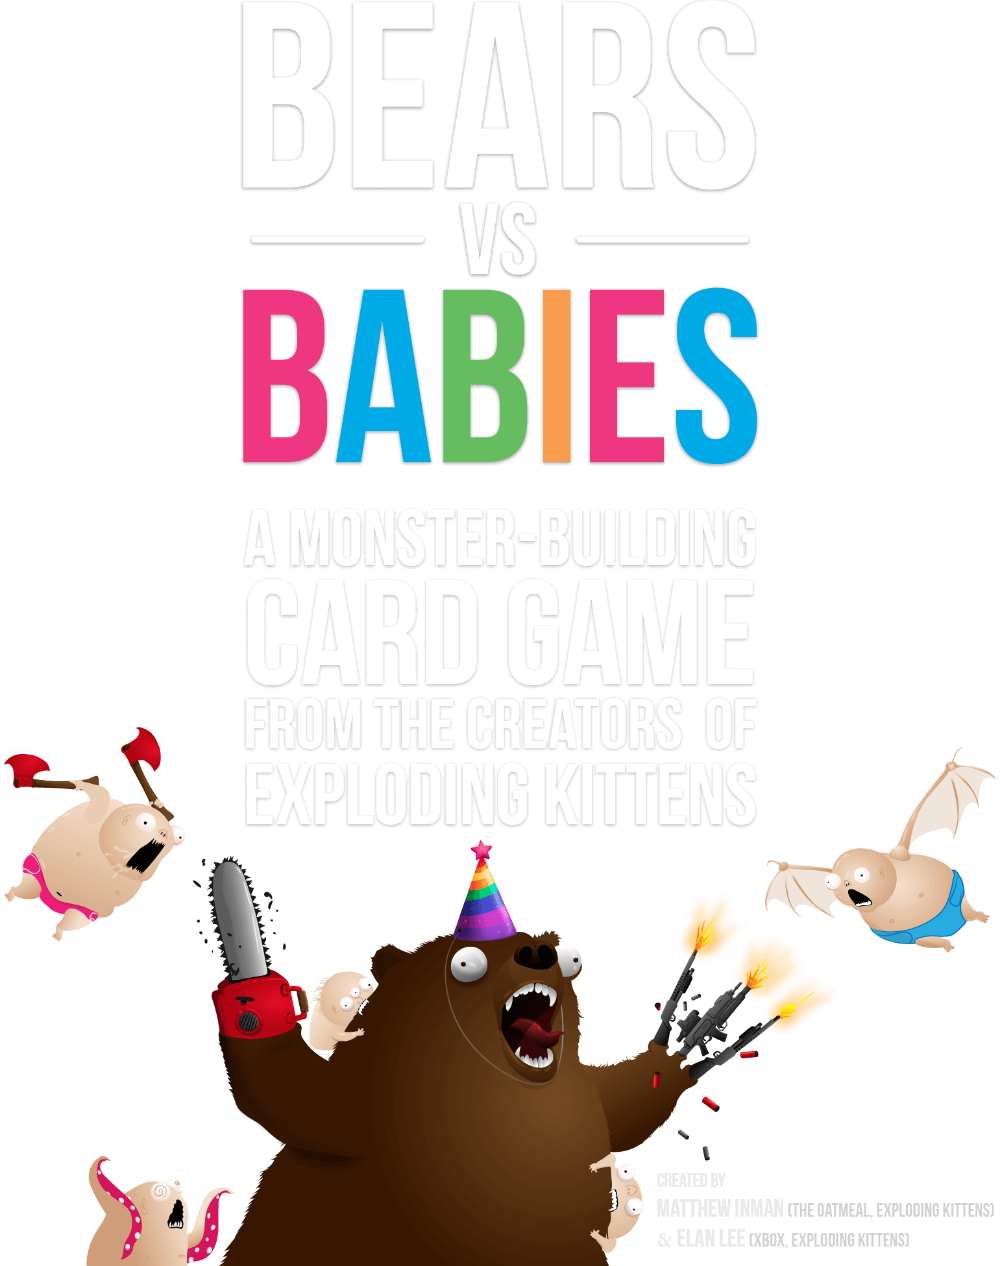 Bears vs Babies A MonsterBuilding Card Game from the